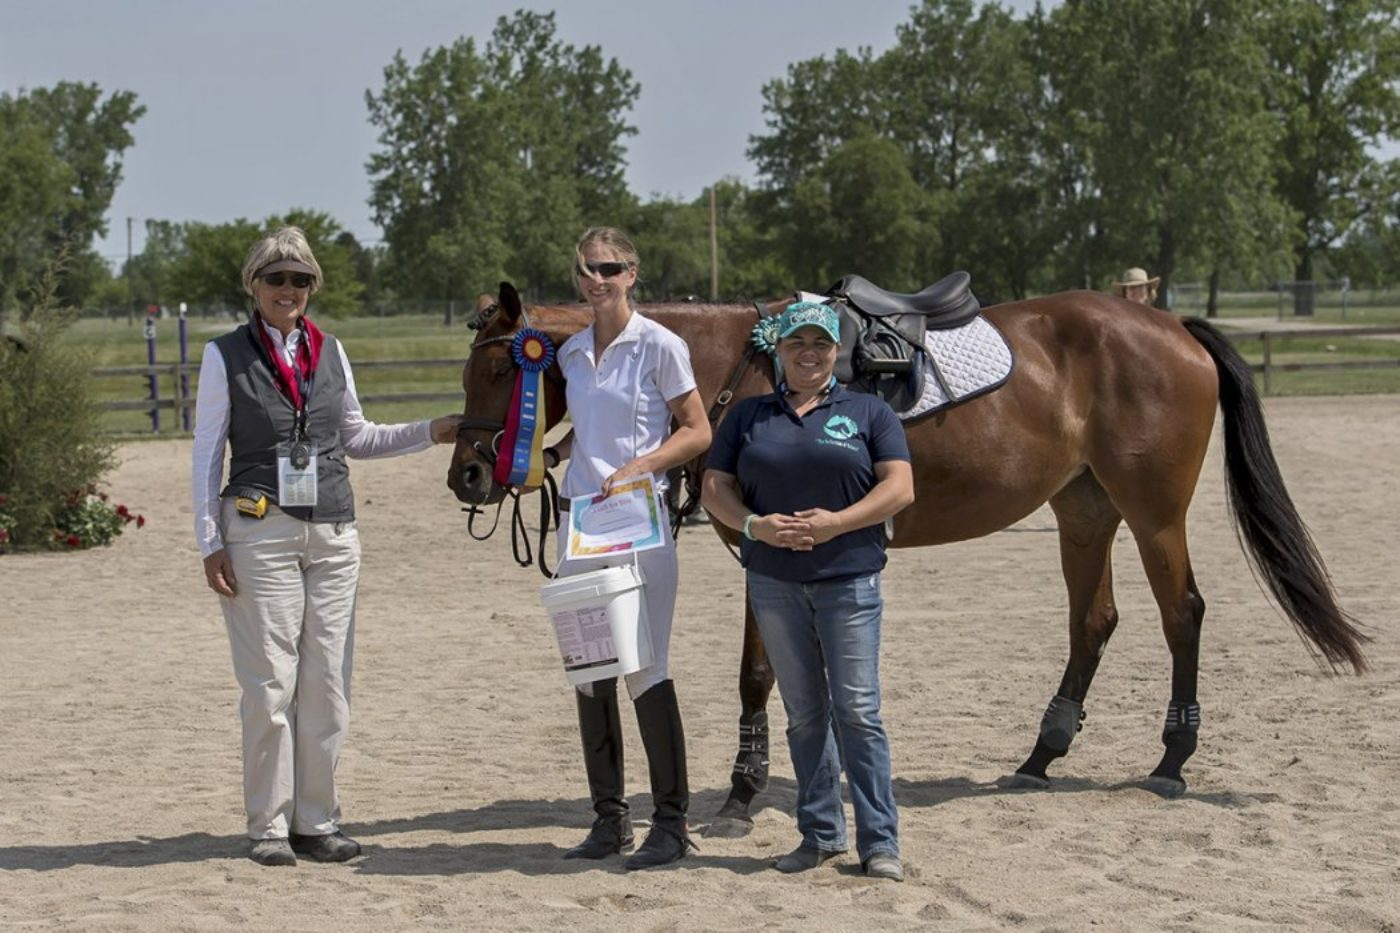 T3D - Best Conditioned - Natasha Erschen and Emerald Lion. Allen MacMillan Photo.